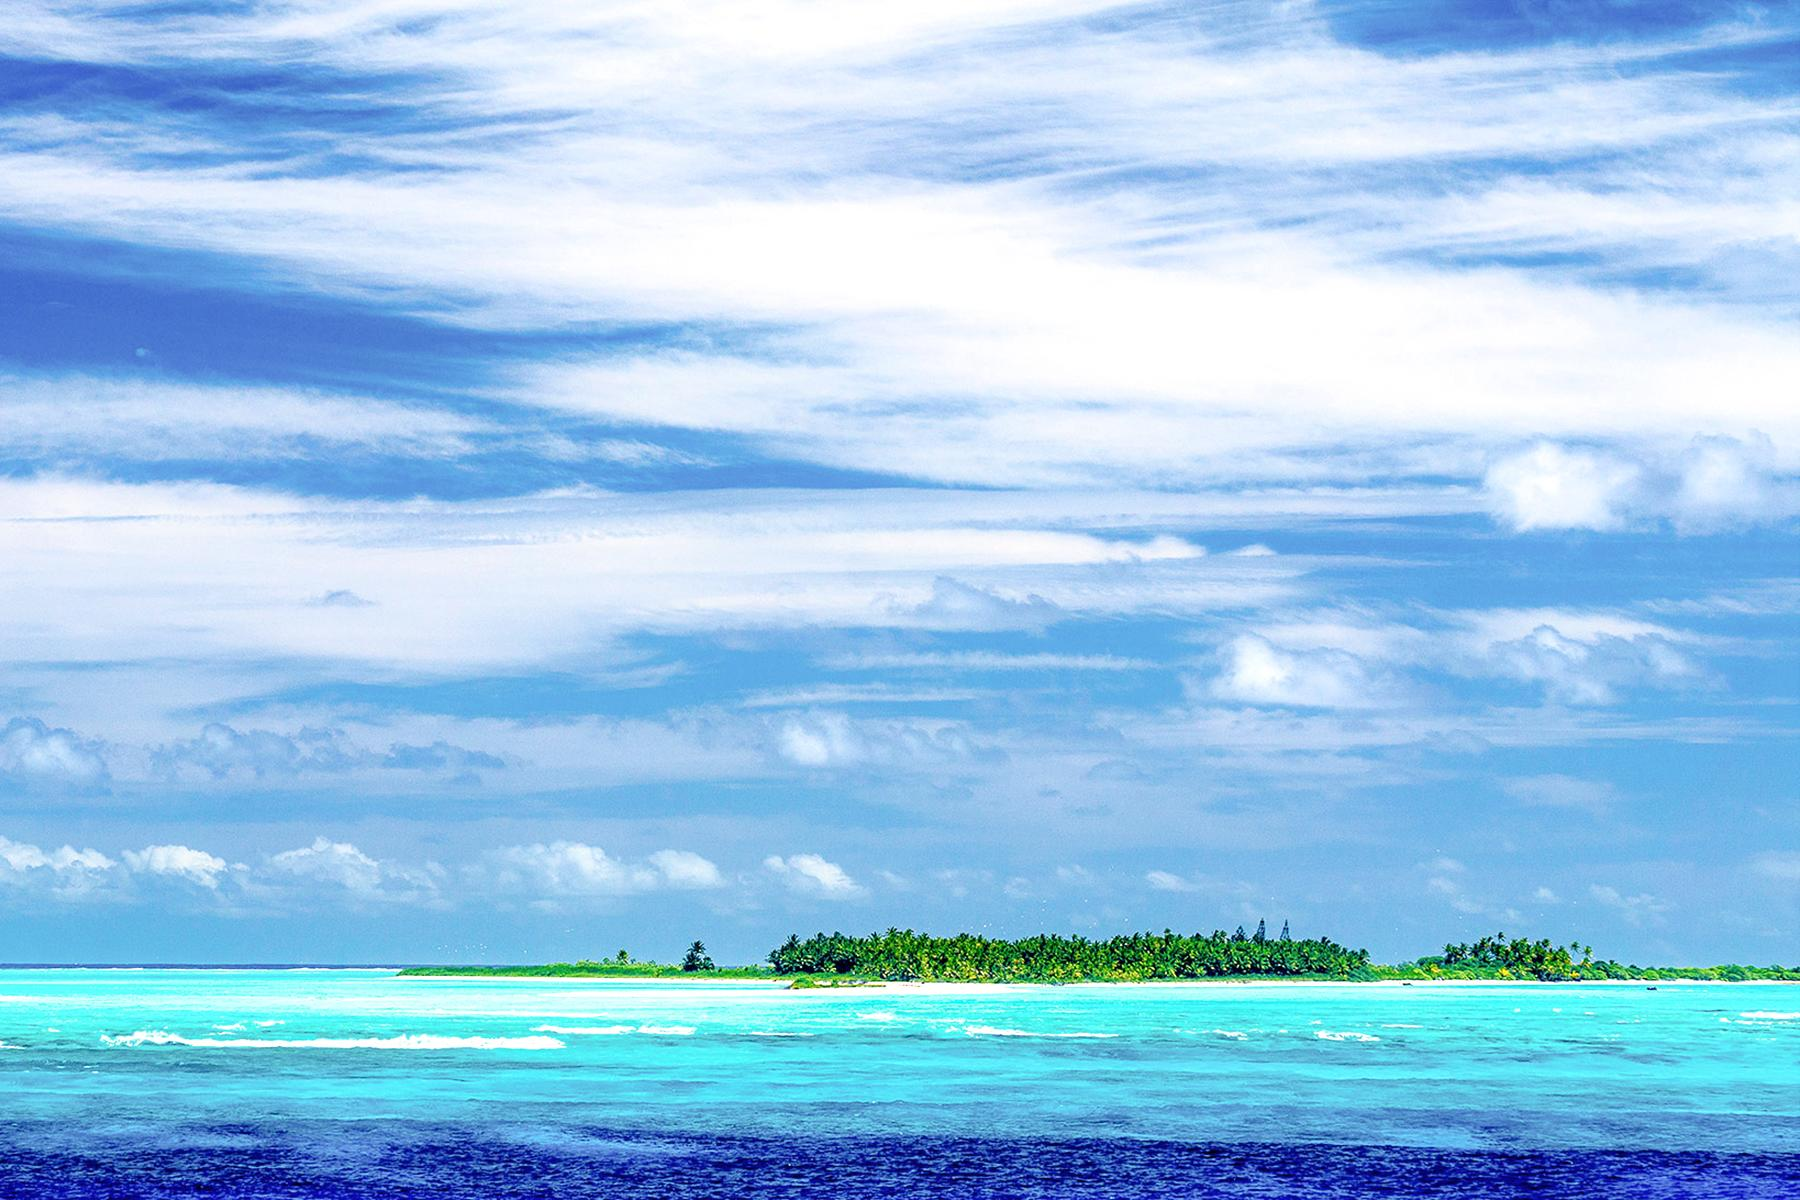 20 Pictures of the Most Beautiful South Pacific Islands |Most Beautiful Beaches South Pacific